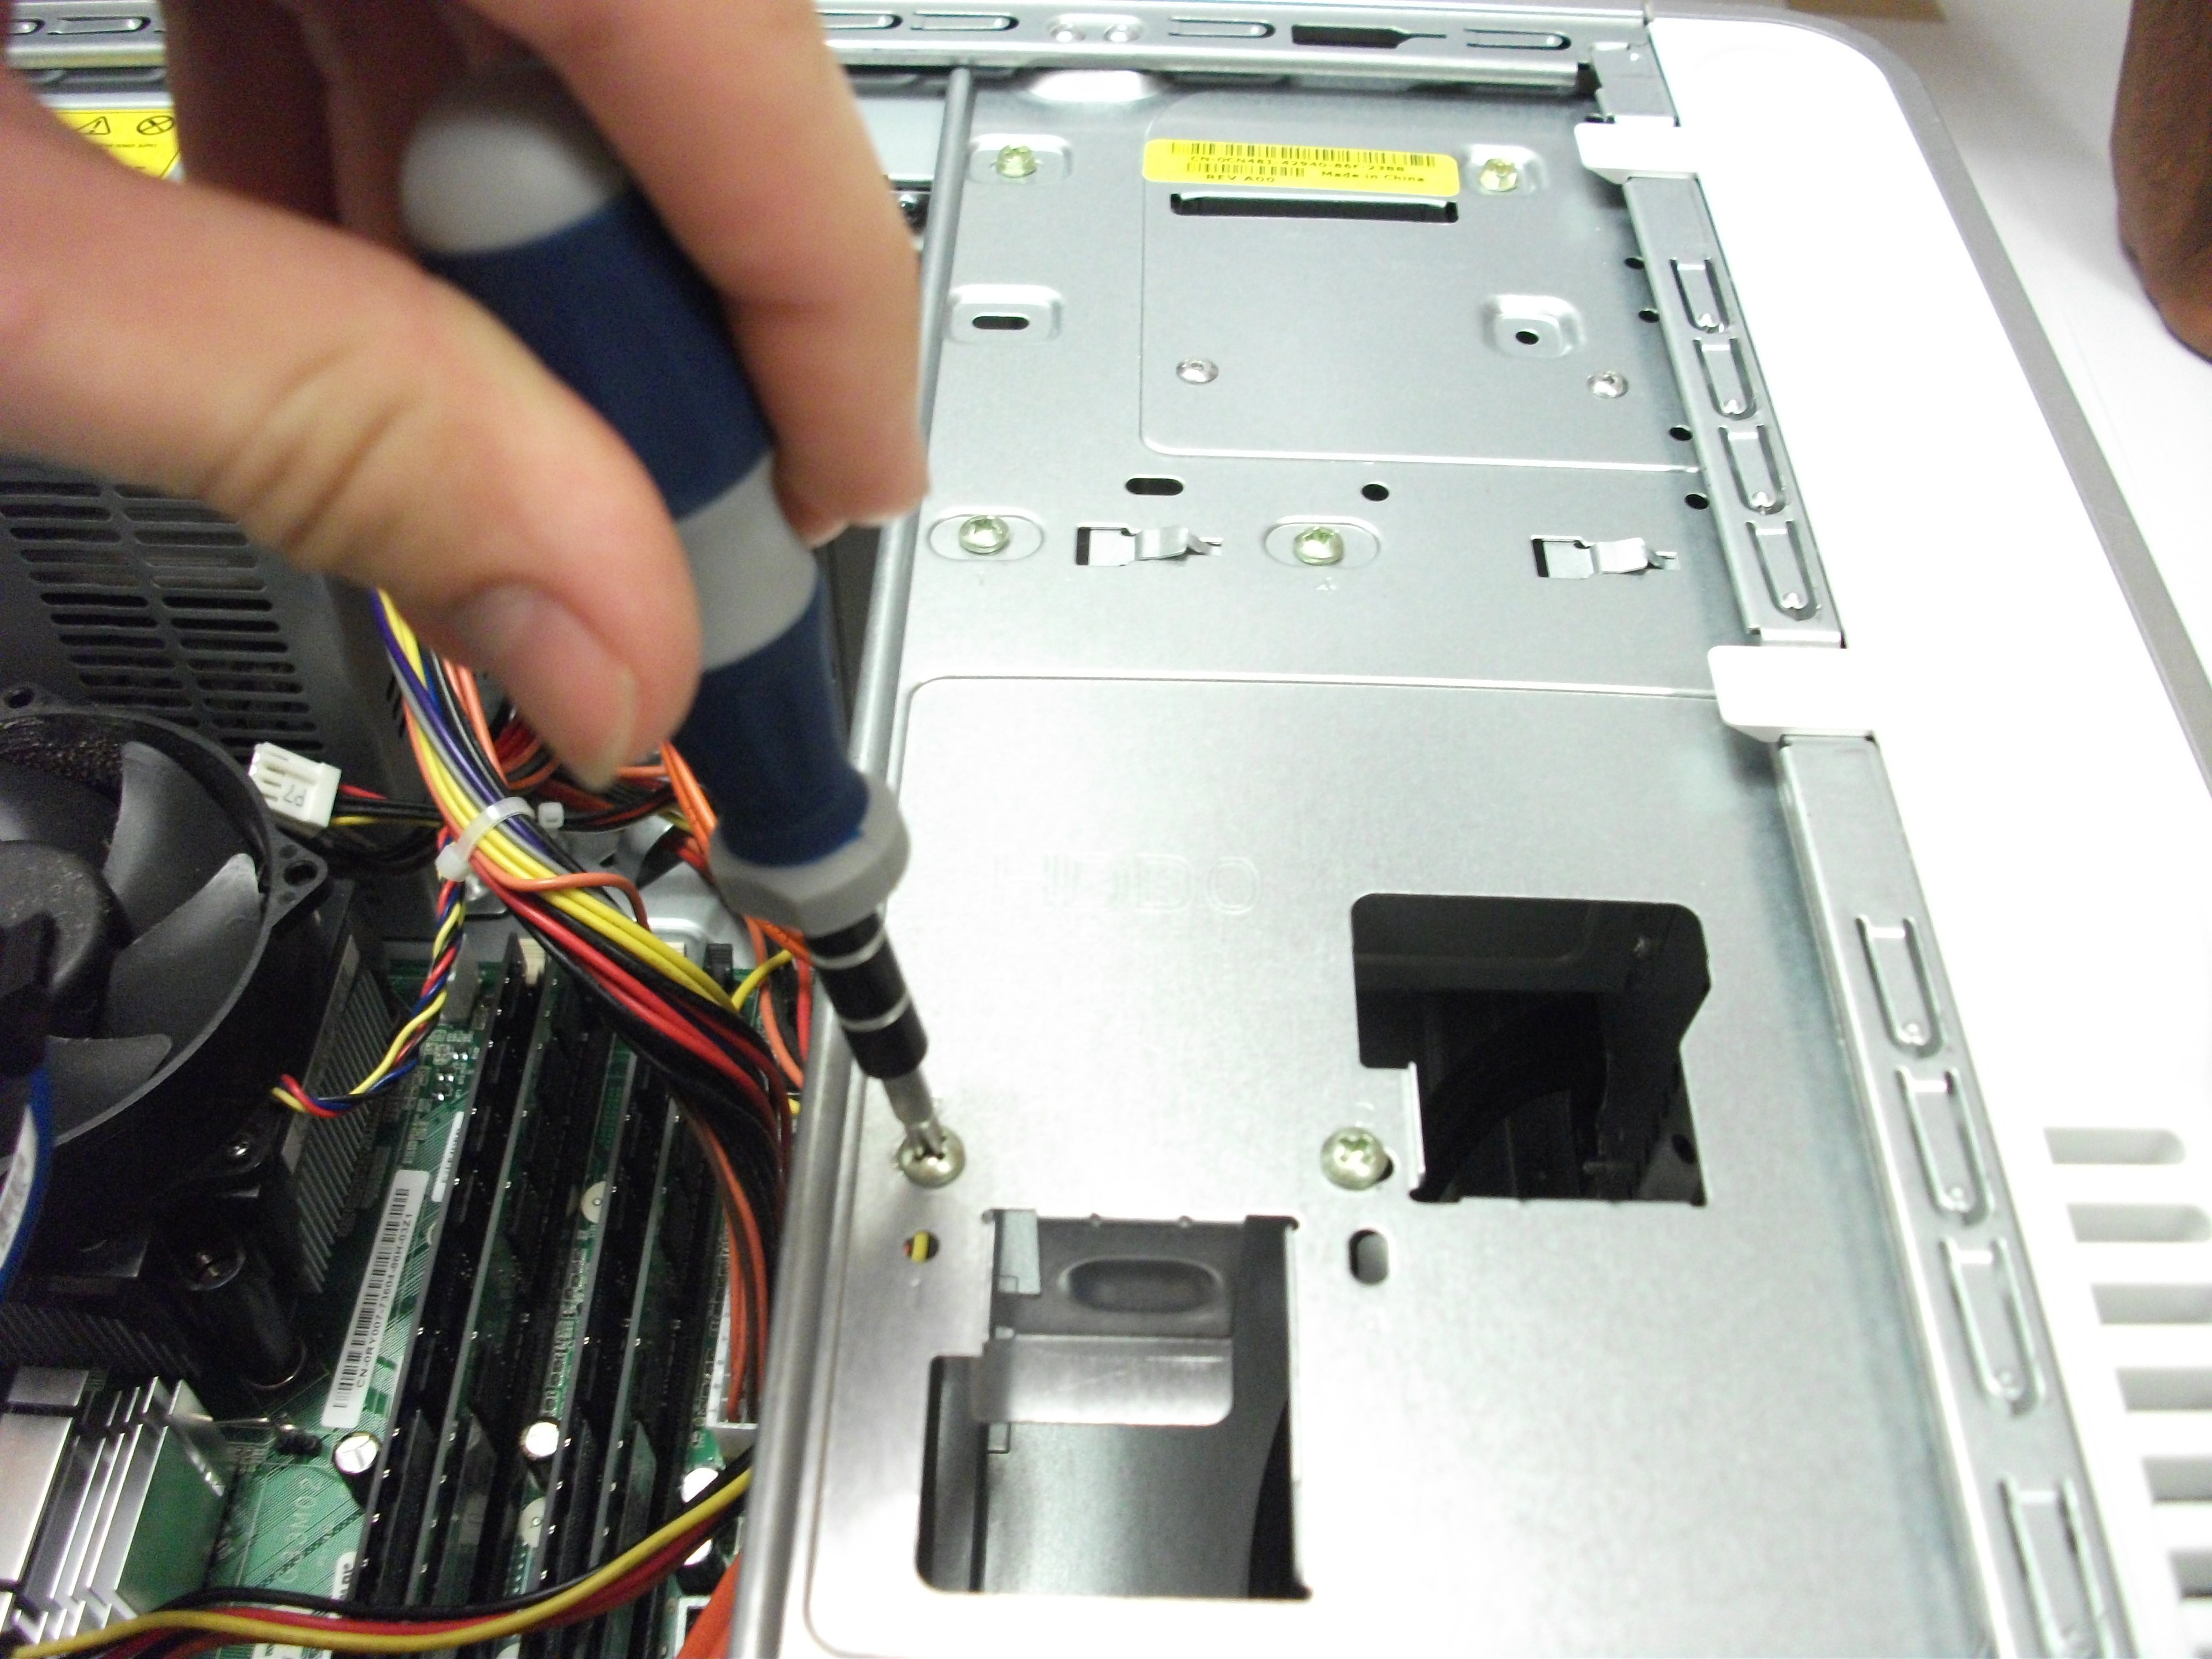 dell inspiron 530 motherboard diagram plant cell test repair ifixit hard drive